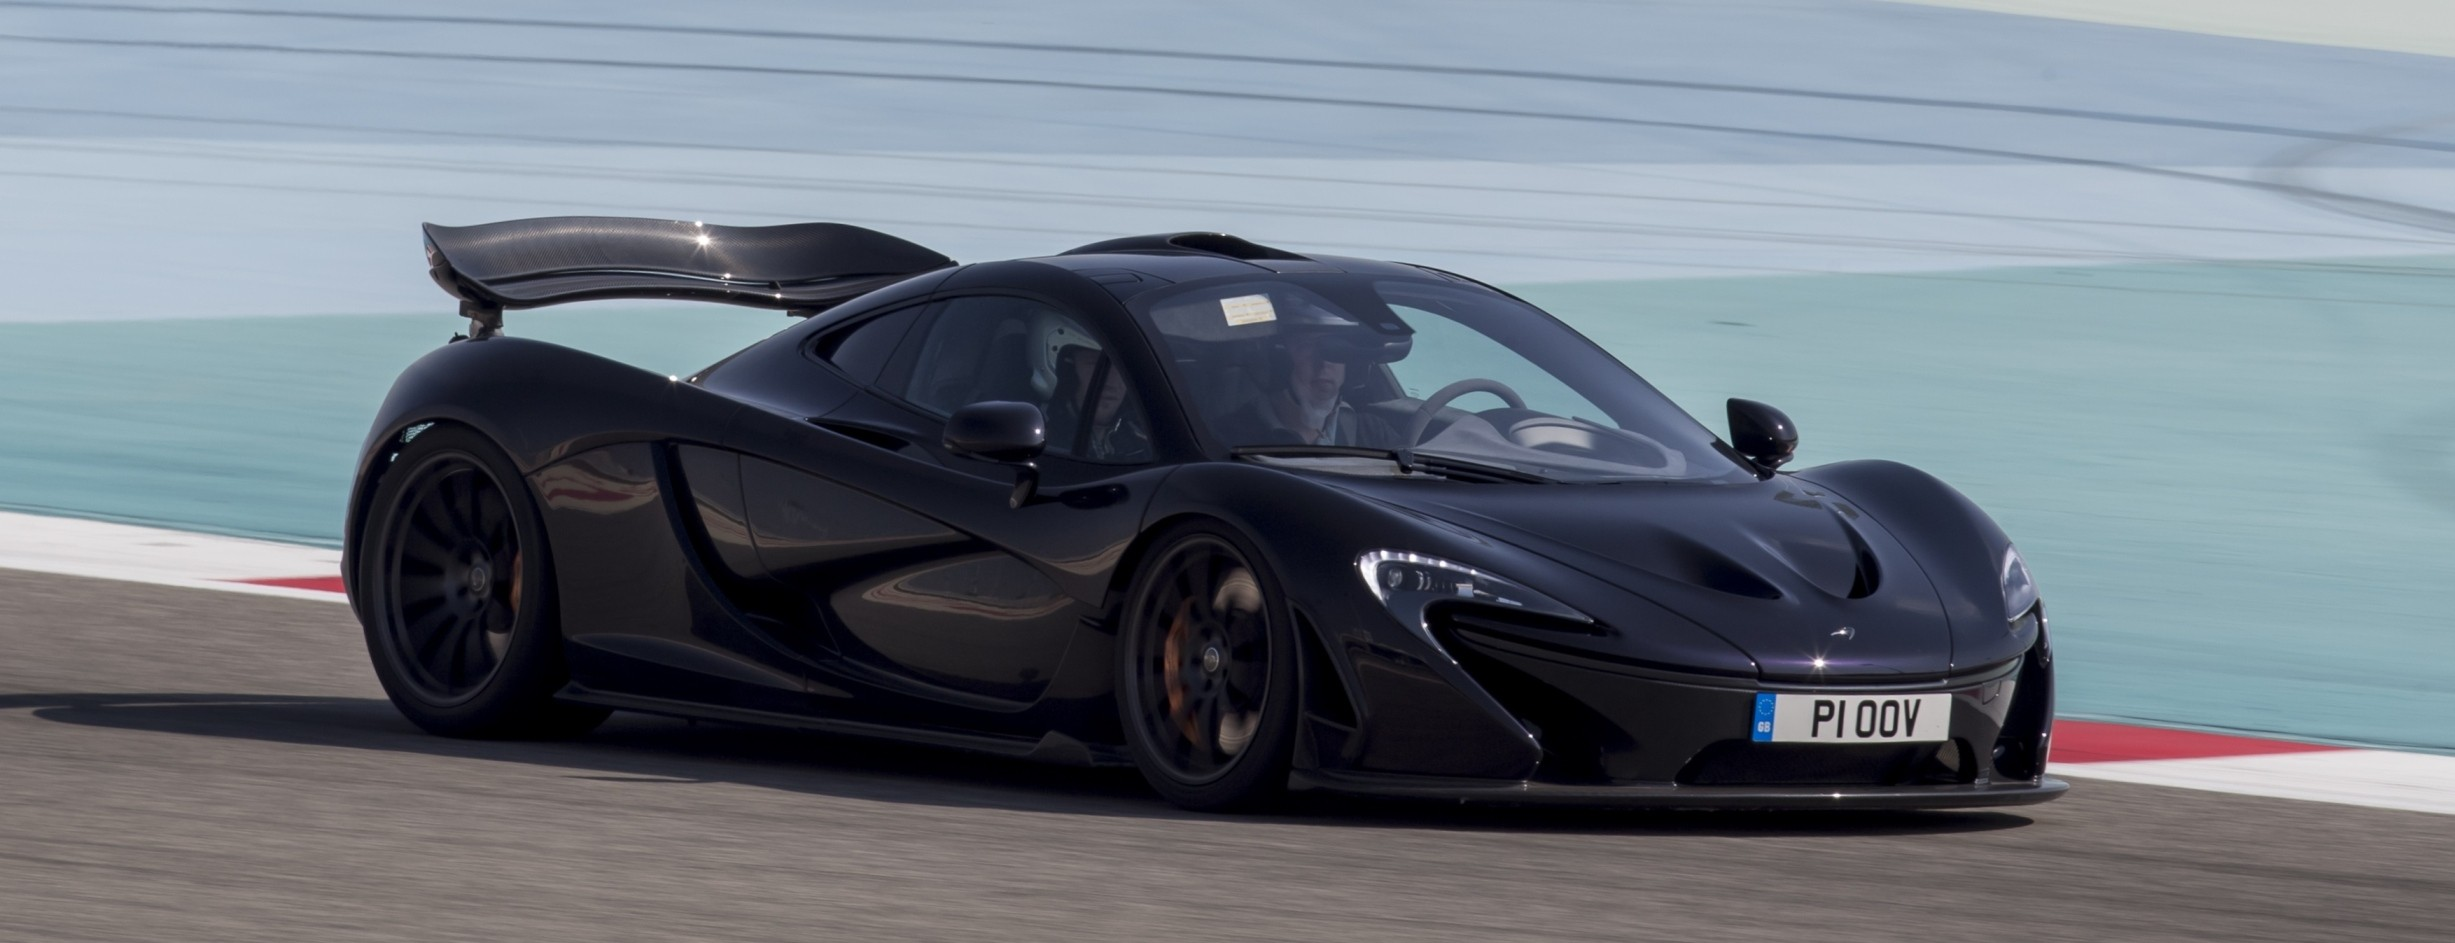 And for the P1's dynamic beauty in these latest photos, we'd say ...